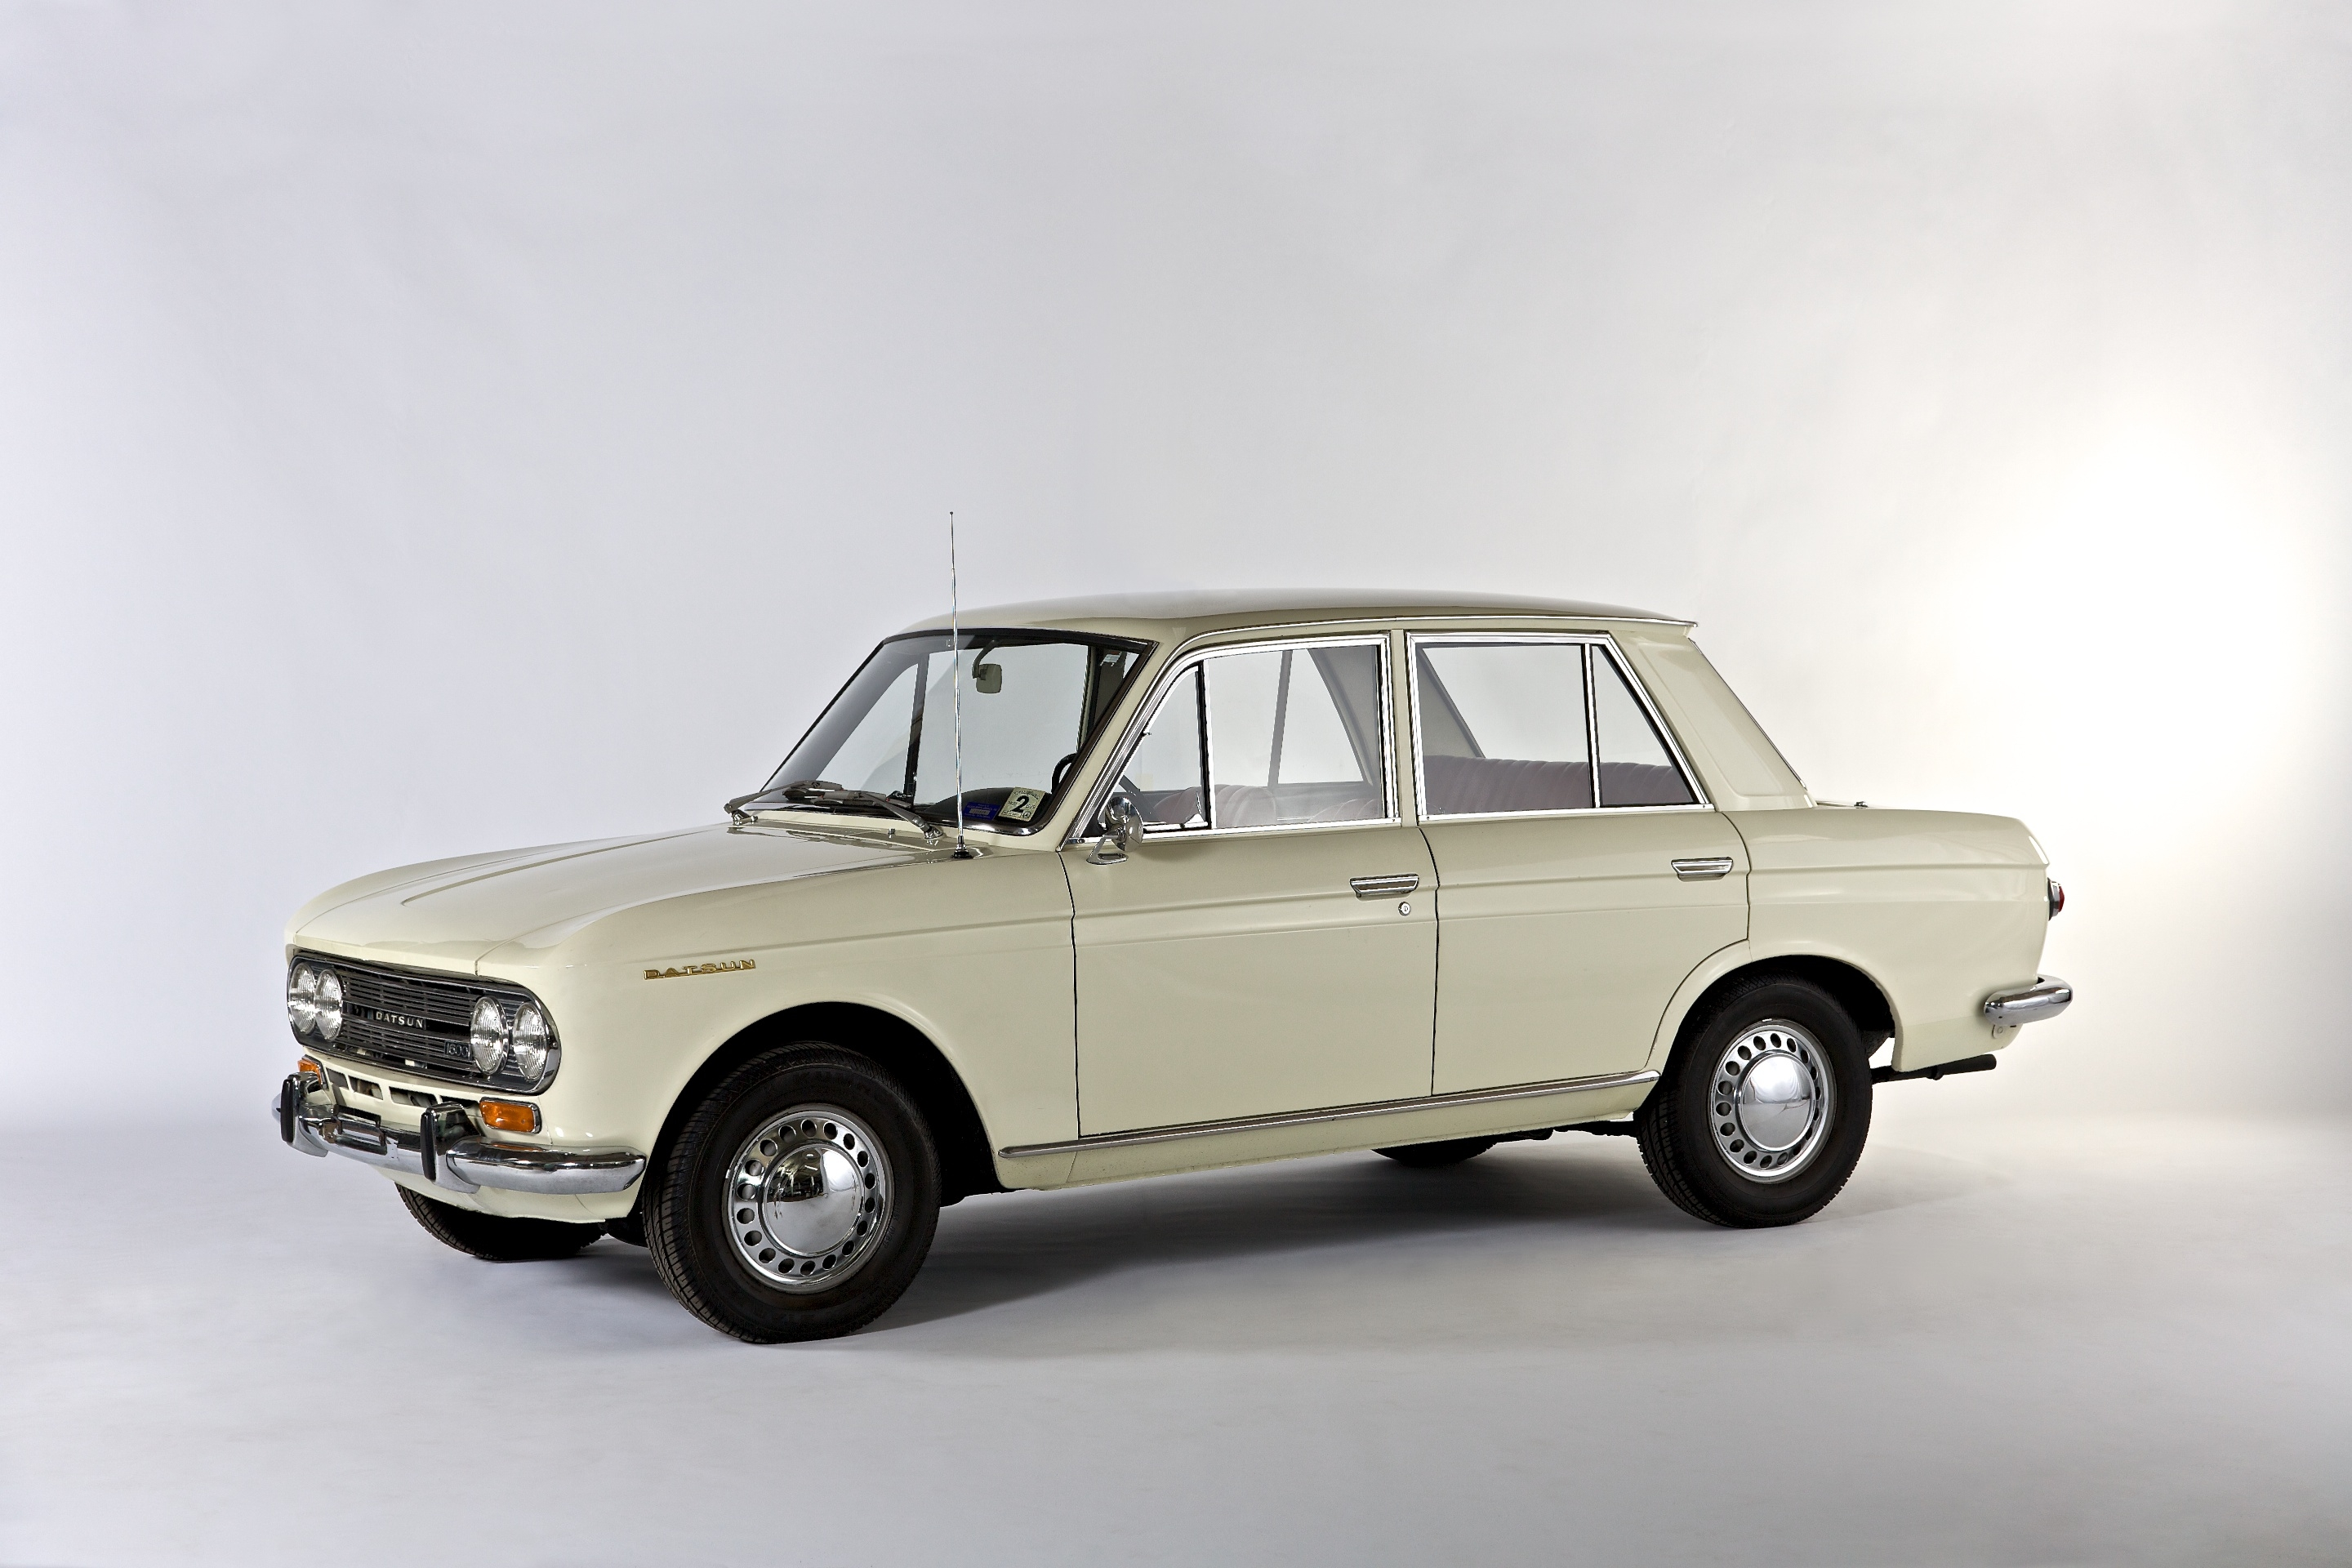 "The Datsun 411 was produced from 1965 to 1967 and featured a body designed by Italy's famed Pininfarina studio. It shared its 96-horsepower 1.6-liter inline 4-cylinder engine with the sporty Datsun 1600 Roadster and featured standard front disc brakes and 13-inch wheels and tires. Car and Driver magazine, in its May 1967 review said, ""From what we were able to deduce, it handles creditably well, though its makers have a lot to learn about the subtleties of shock absorber calibration."""